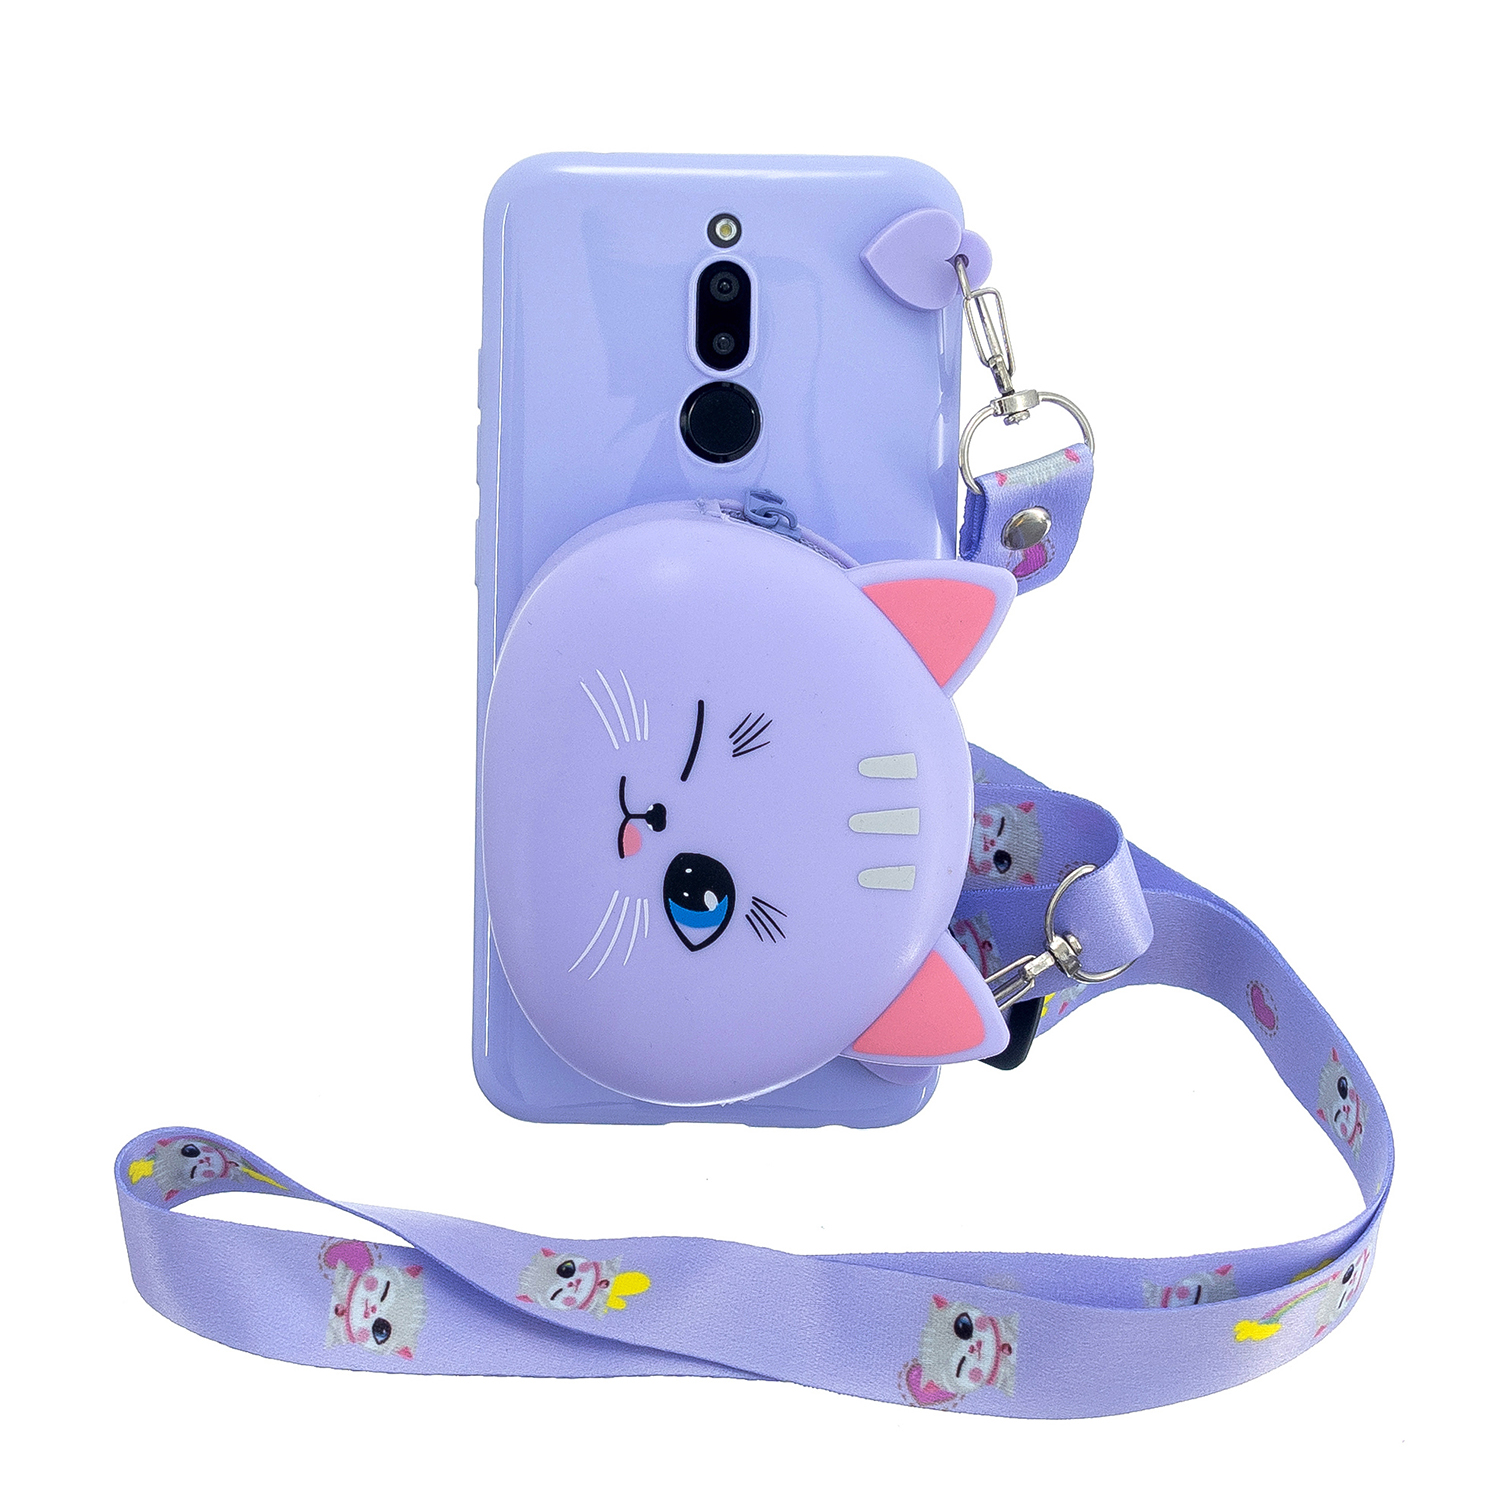 For Redmi 8/Redmi 8A Case Mobile Phone Shell Shockproof Cellphone TPU Cover with Cartoon Cat Pig Panda Coin Purse Lovely Shoulder Starp  Purple